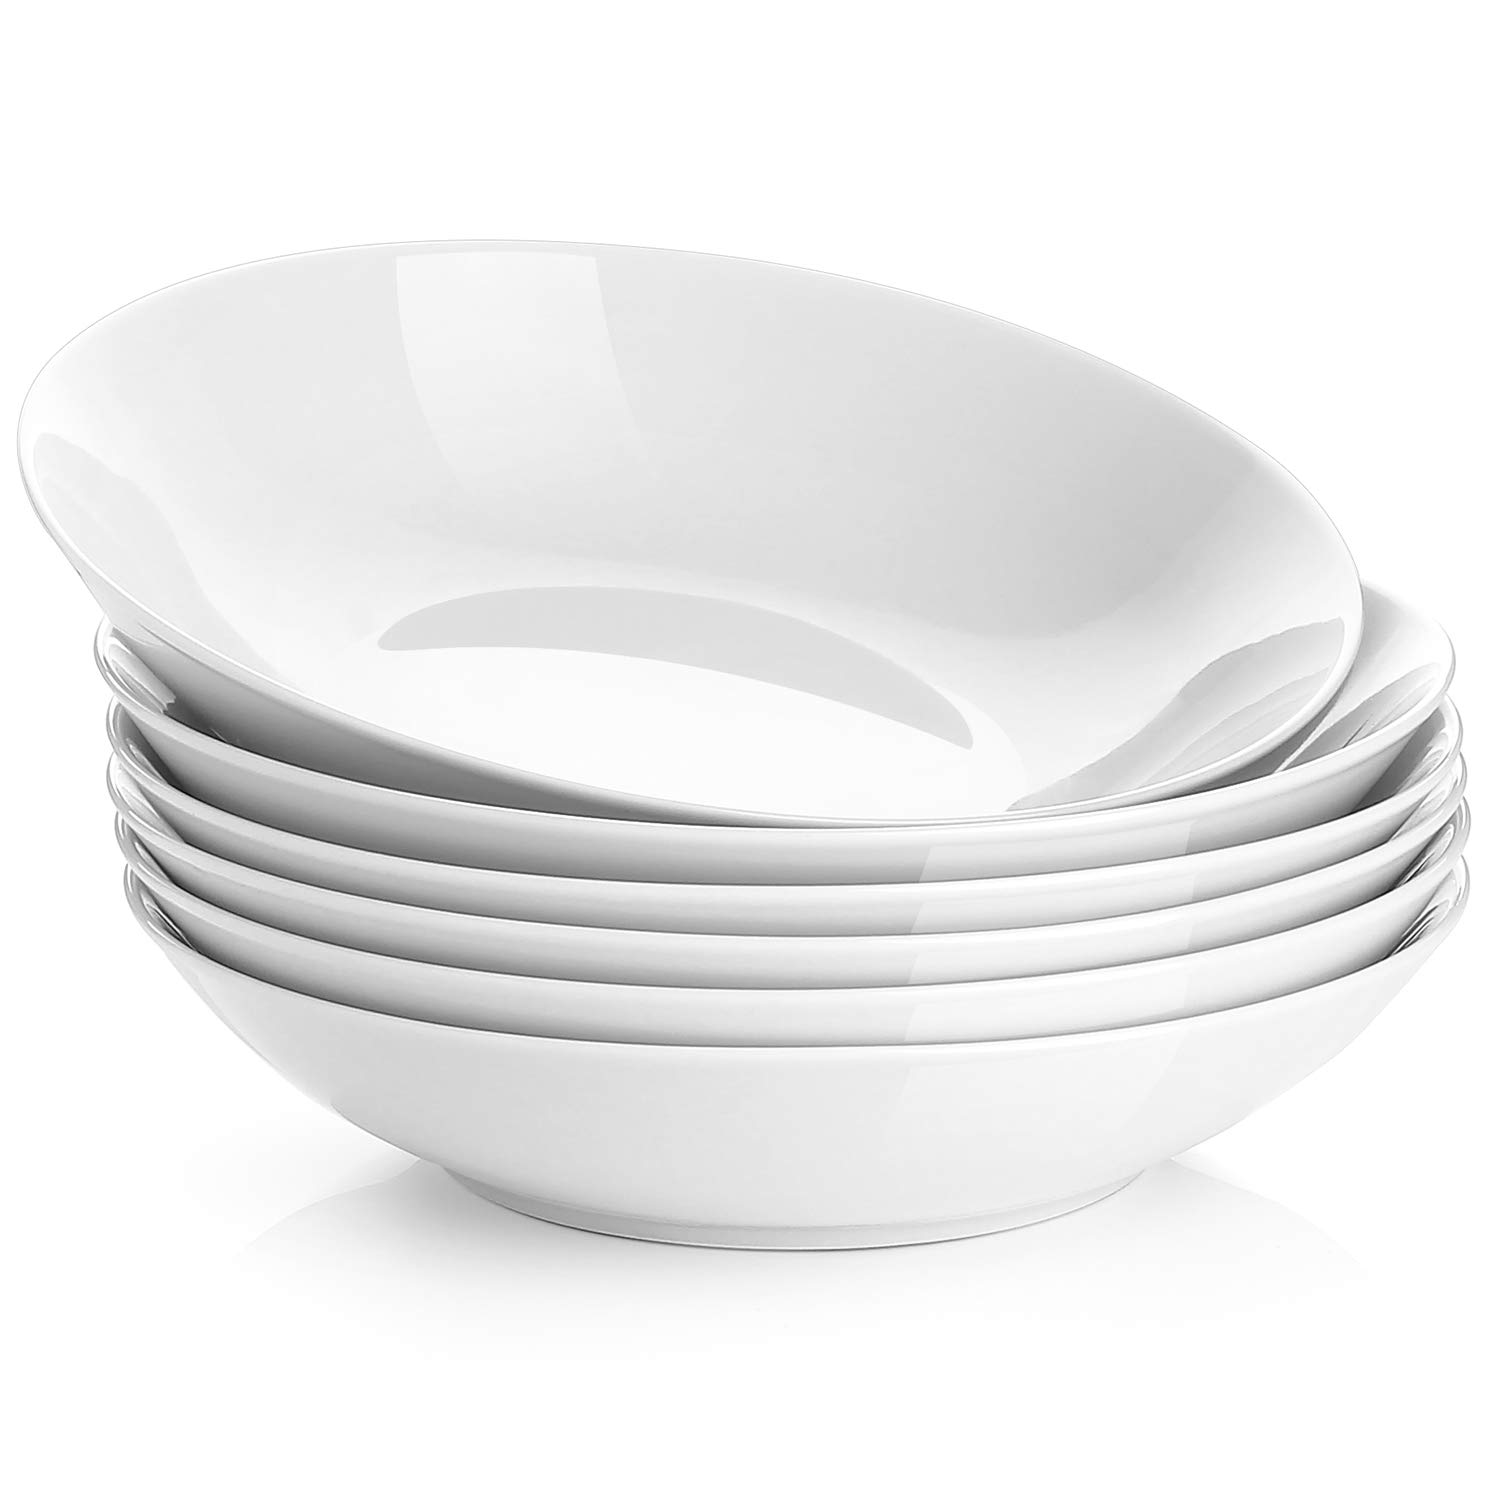 Y YHY 22-Ounce Porcelain Salad/Pasta Bowls, Soup Bowl Set, Shallow & White, Set of 6